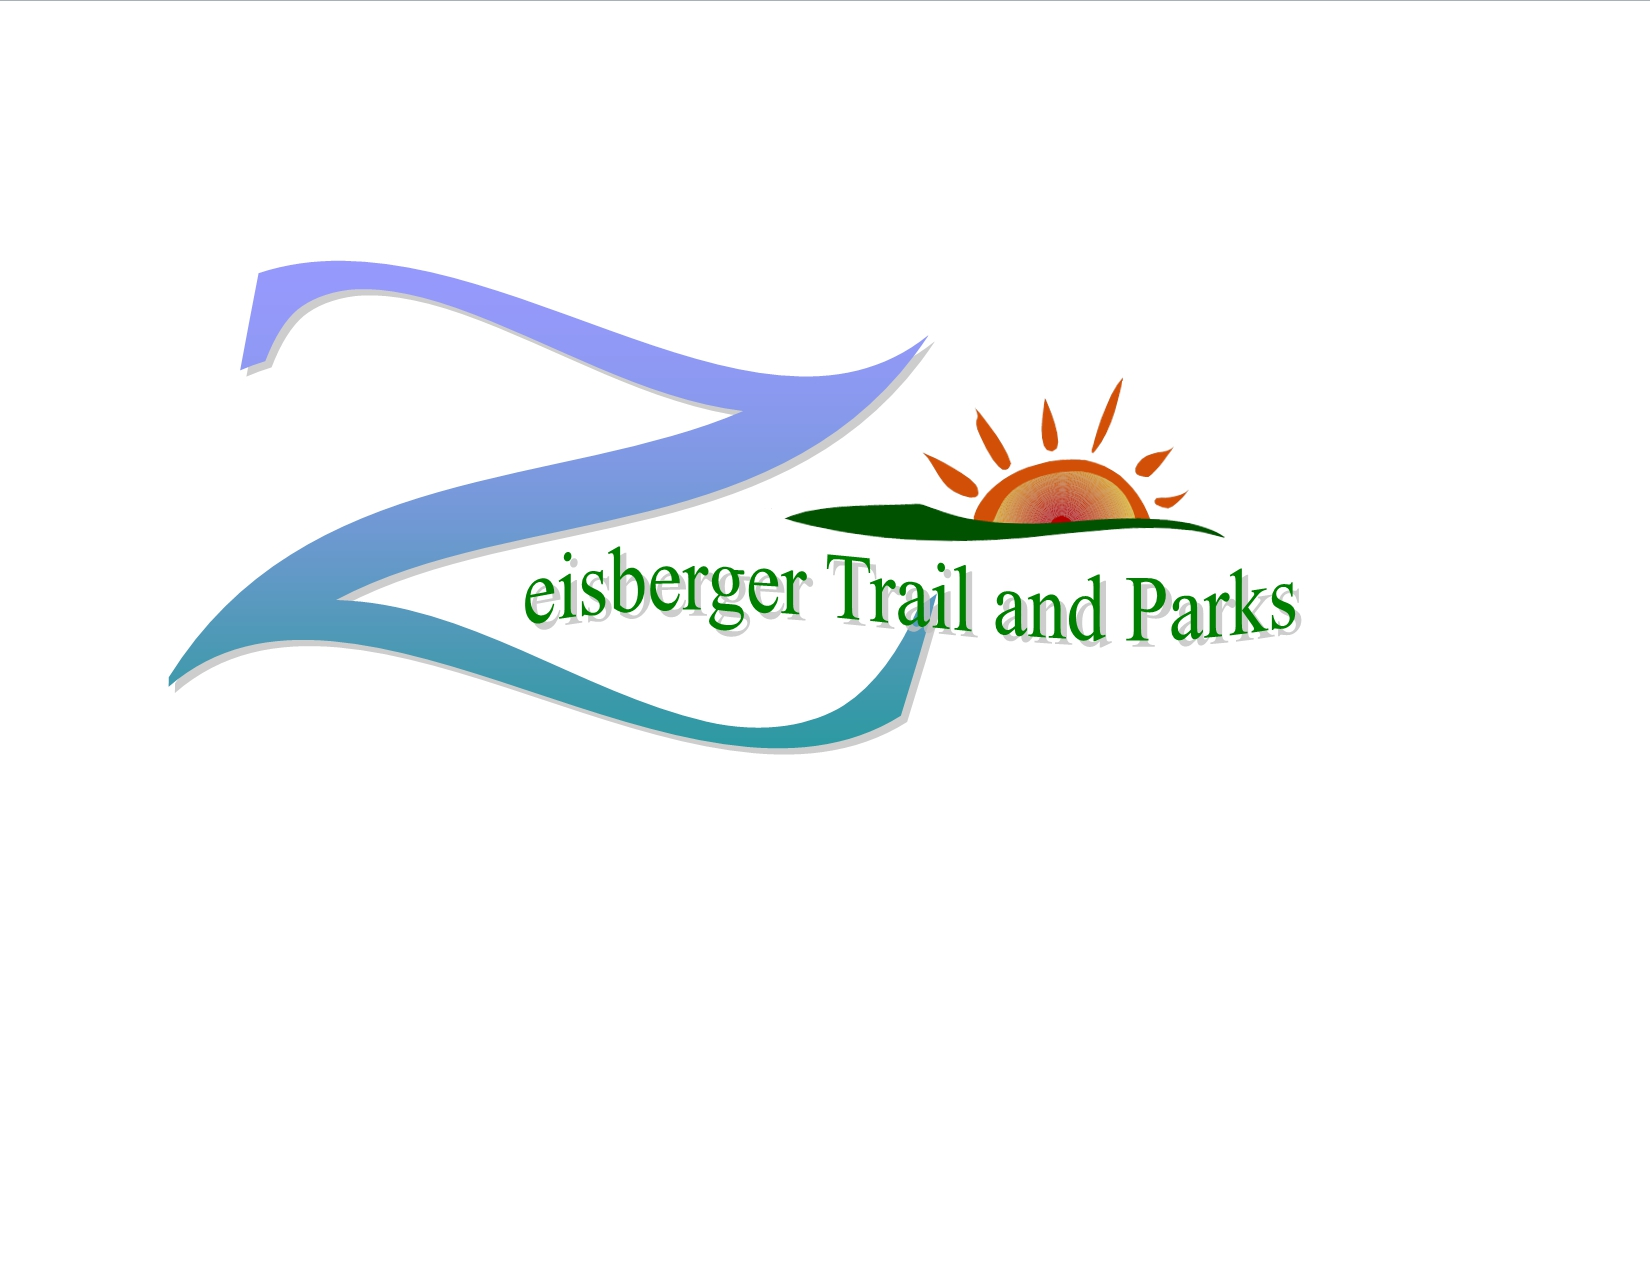 Zeisberger logo 8-20-2012 no bike cleaned up